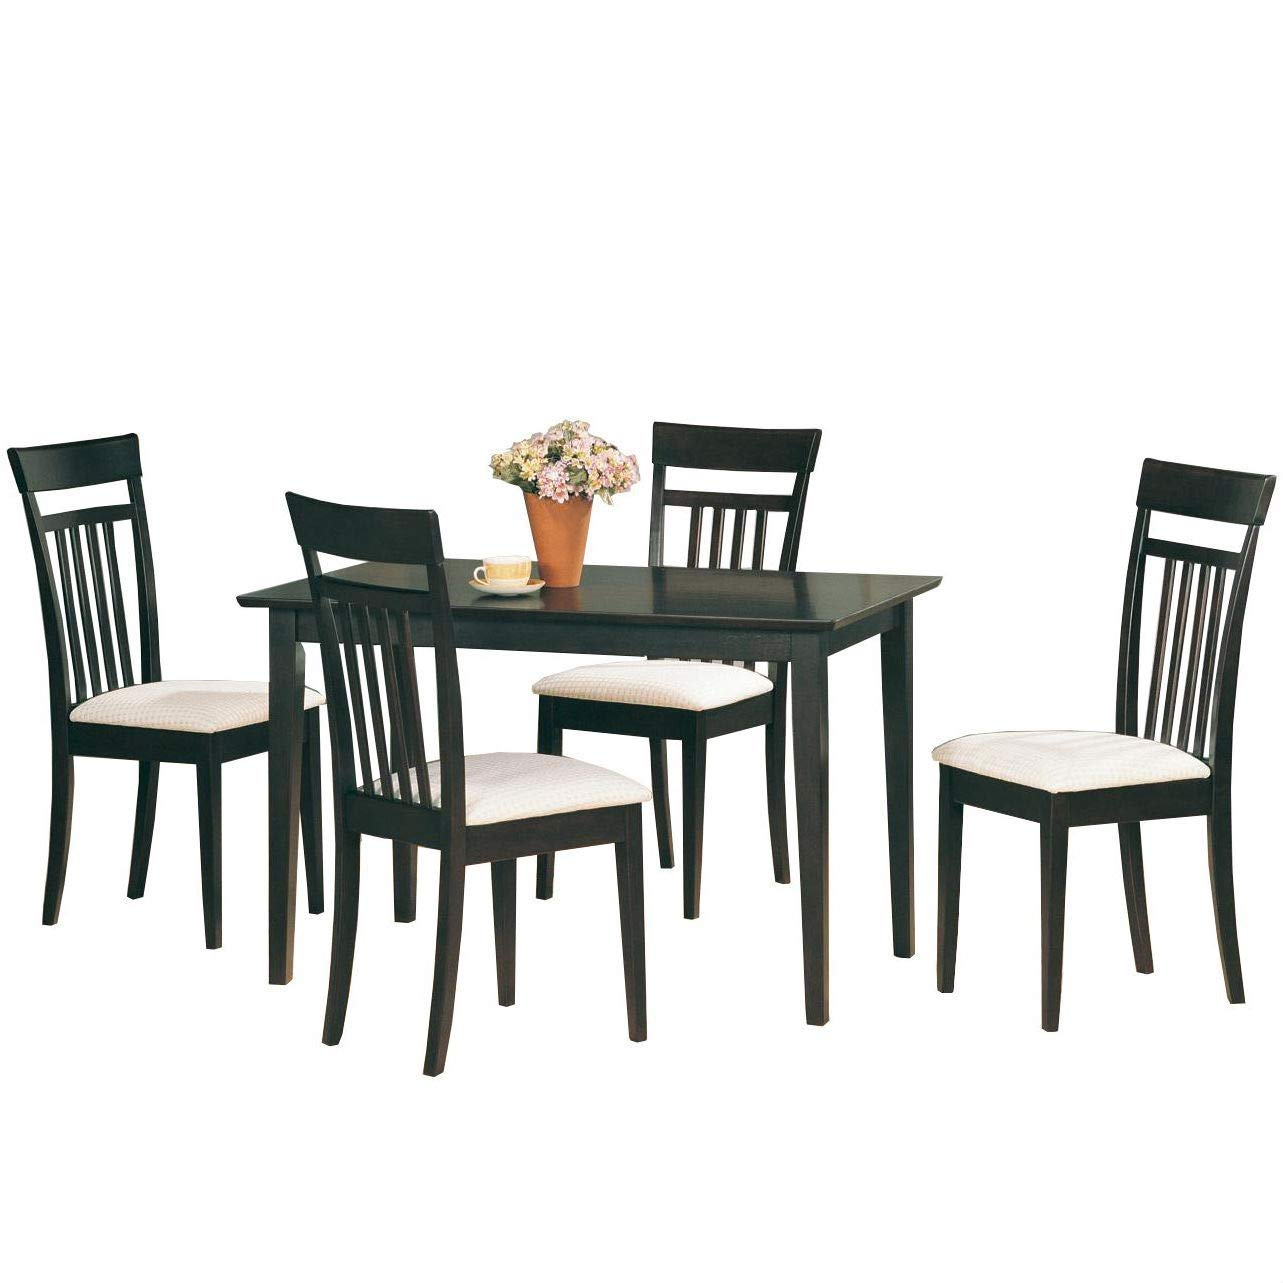 BeUniqueToday Casual Contemporary 5-Piece Dining Set in Dark Brown Wood Finish, Chic Yet Simple Dinette Set for Breakfast Nook or Dining Room, The Table Features Clean Lines and Sleek Tapered Legs